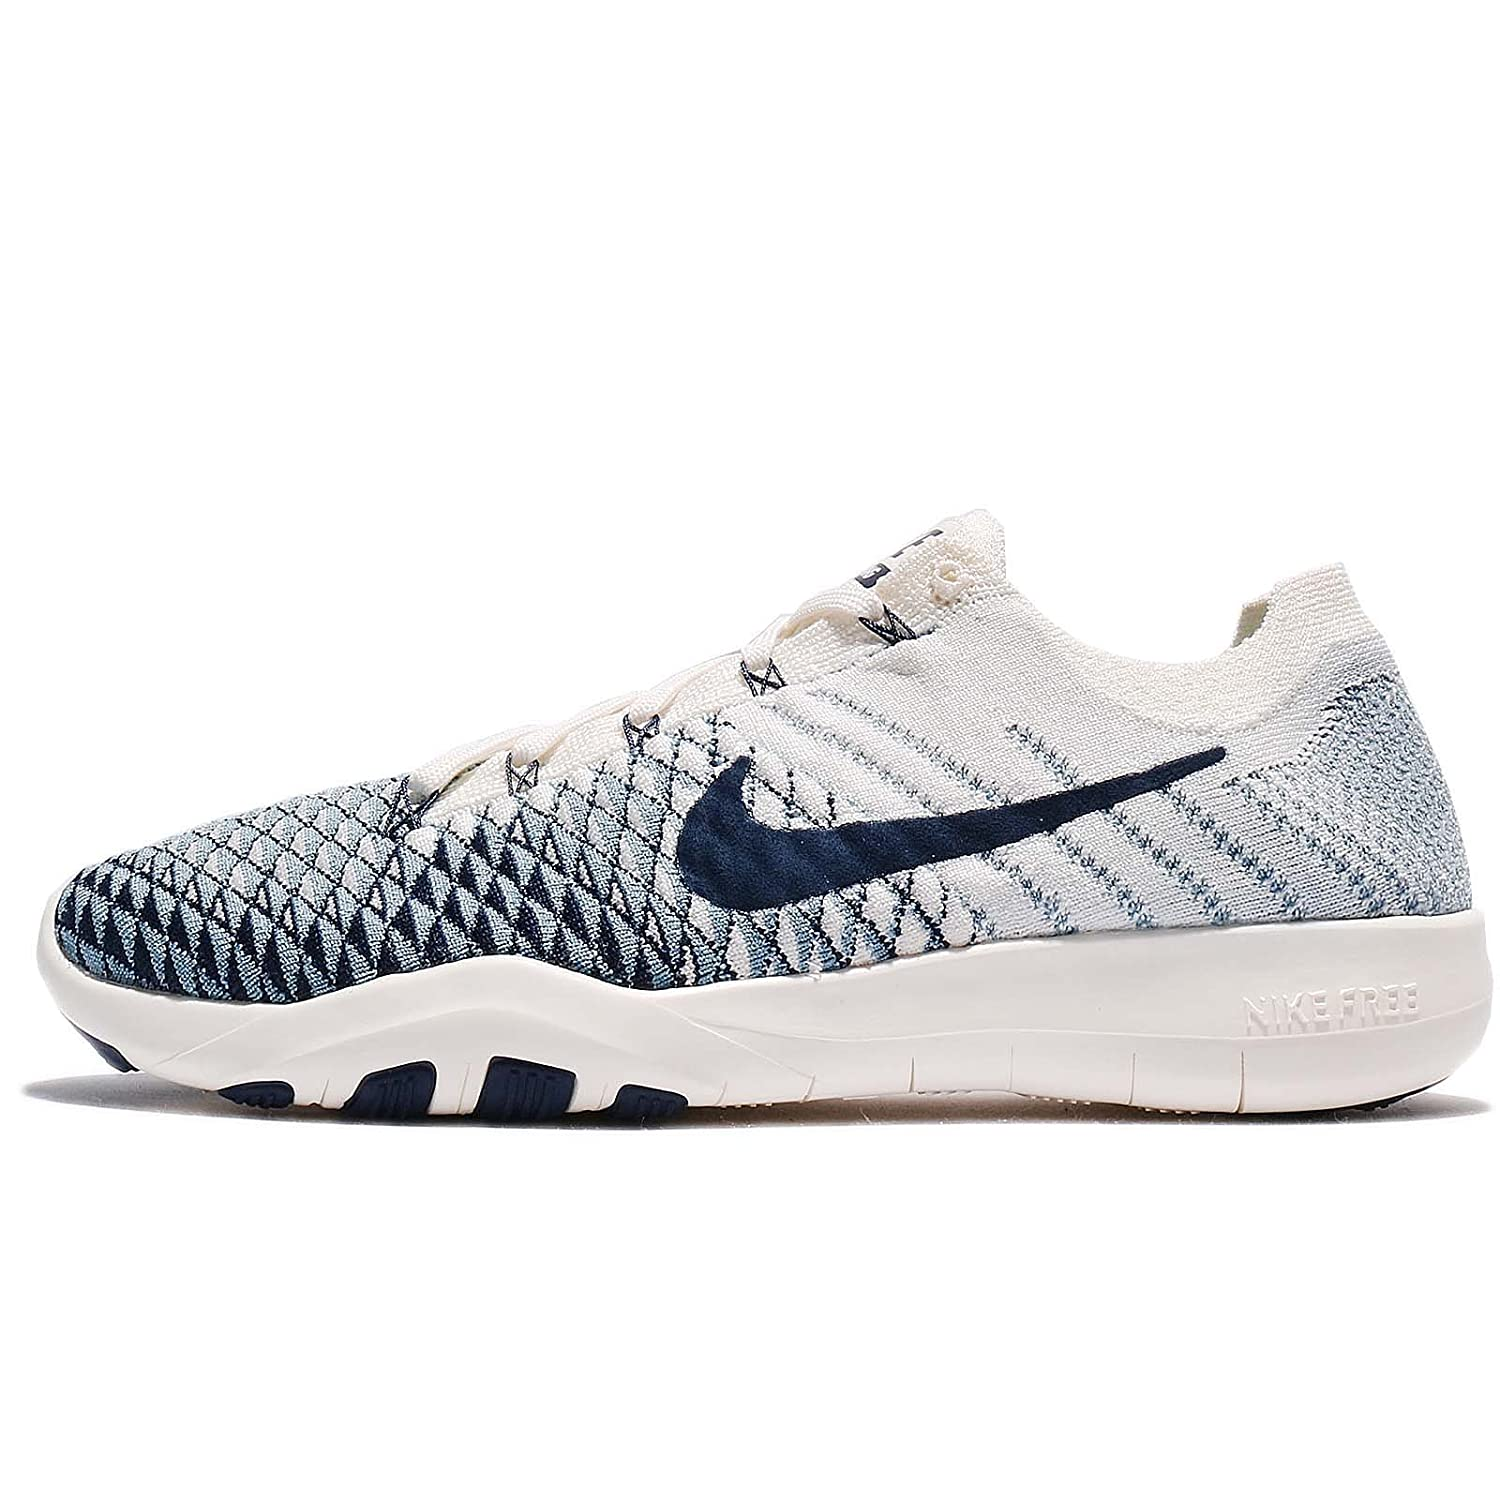 NIKE Free TR Flyknit 2 Womens Running Shoes B004U2FTR8 9.5 B(M) US|Sail/College Navy